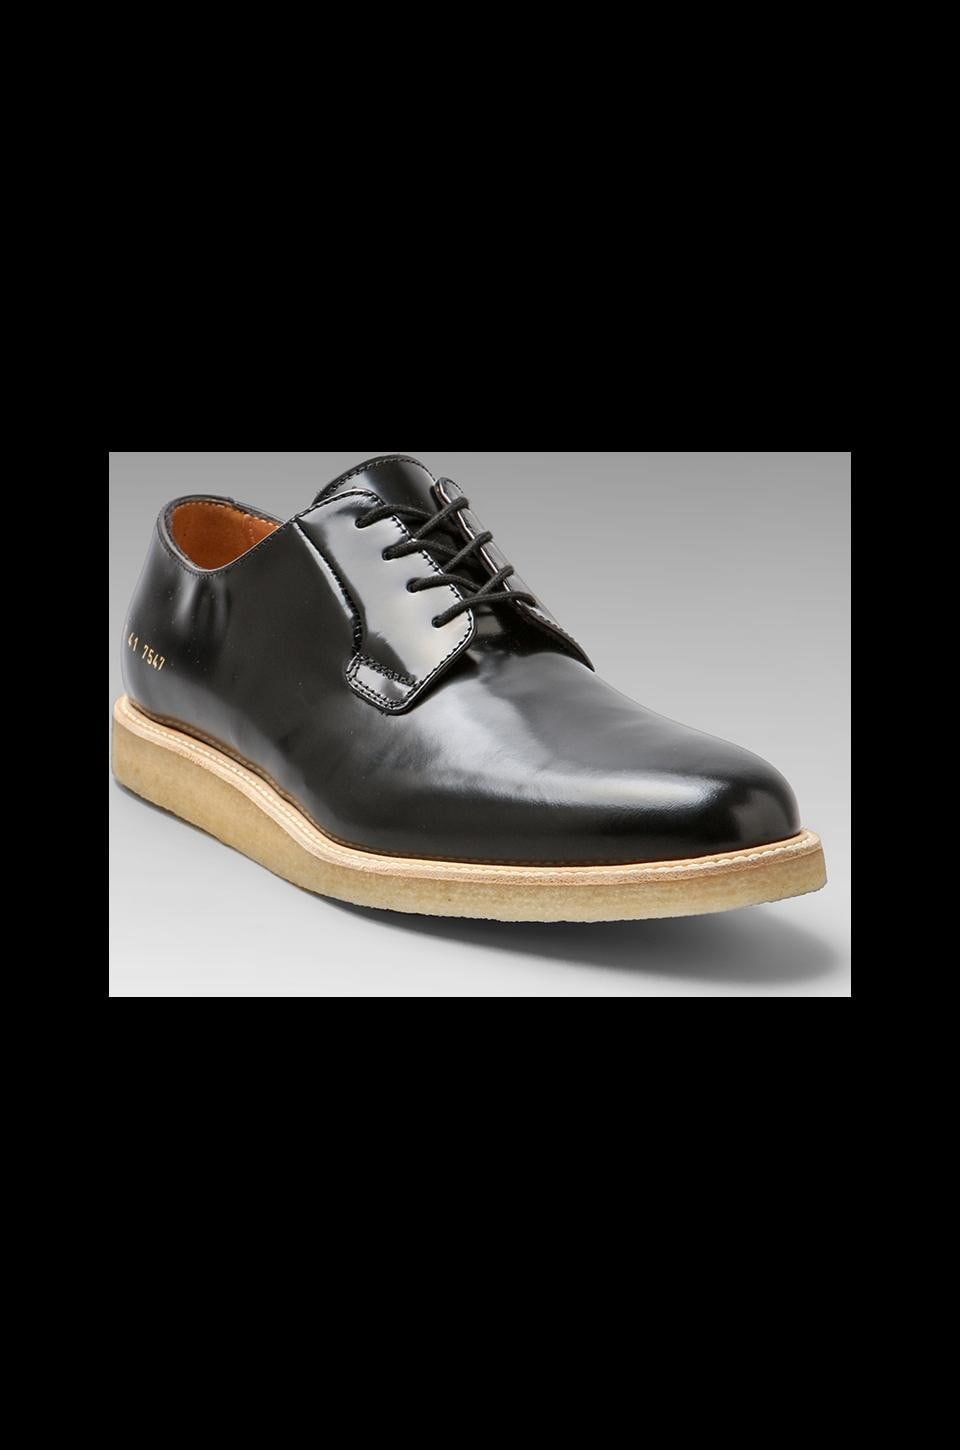 Common Projects Derby in Black